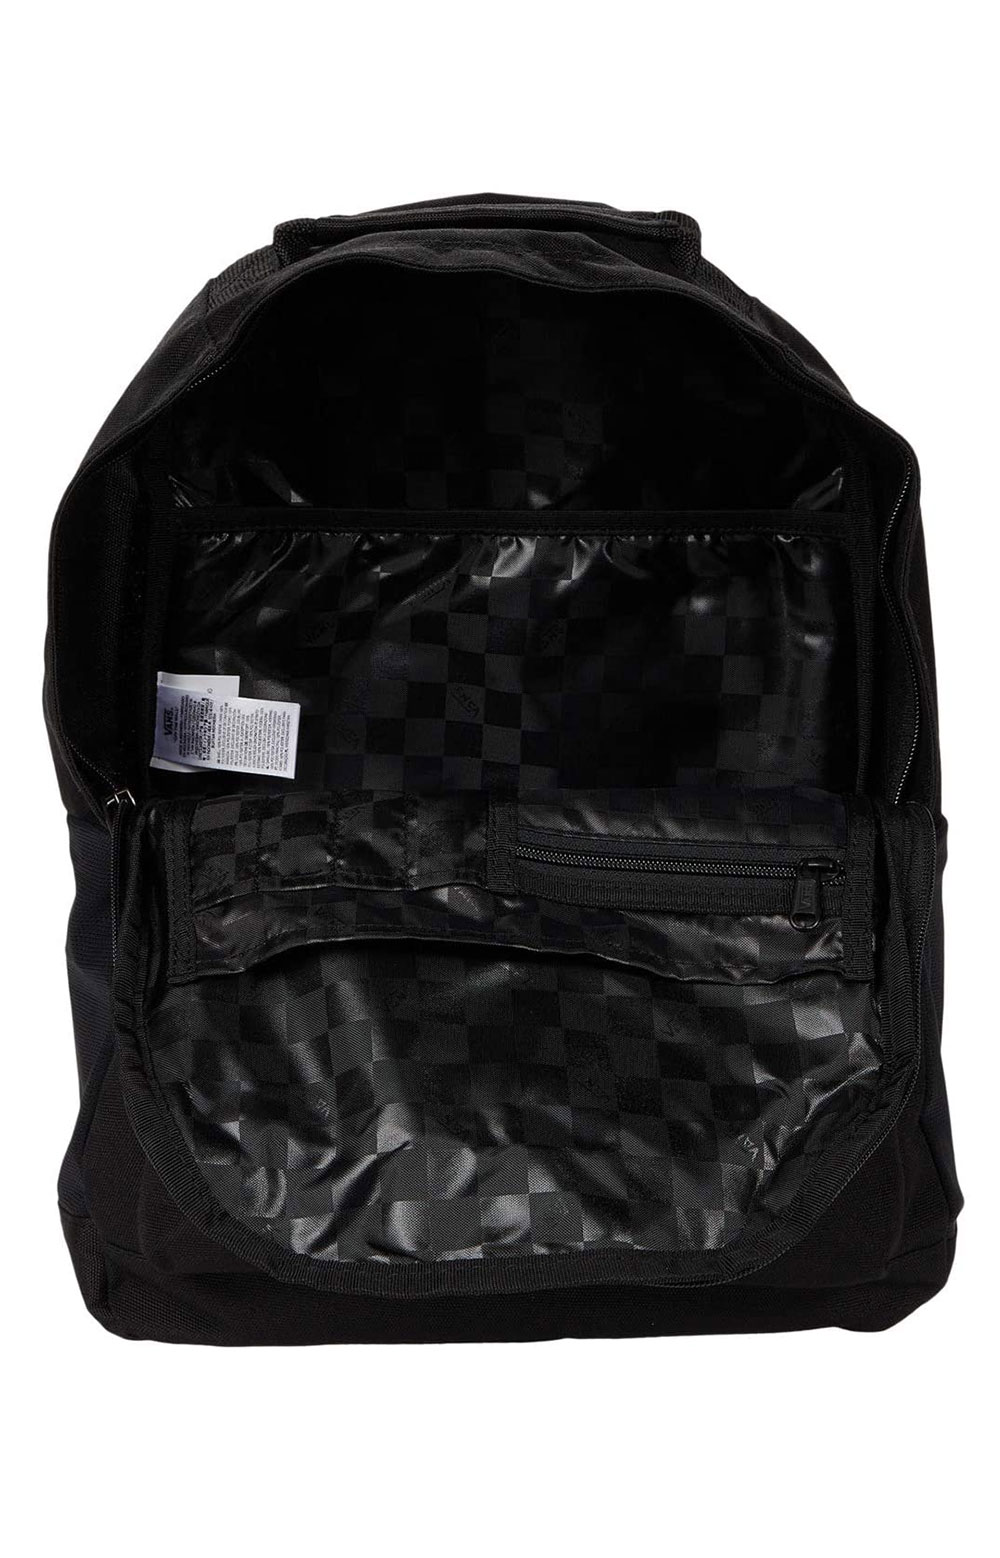 Startle Backpack - Black  3